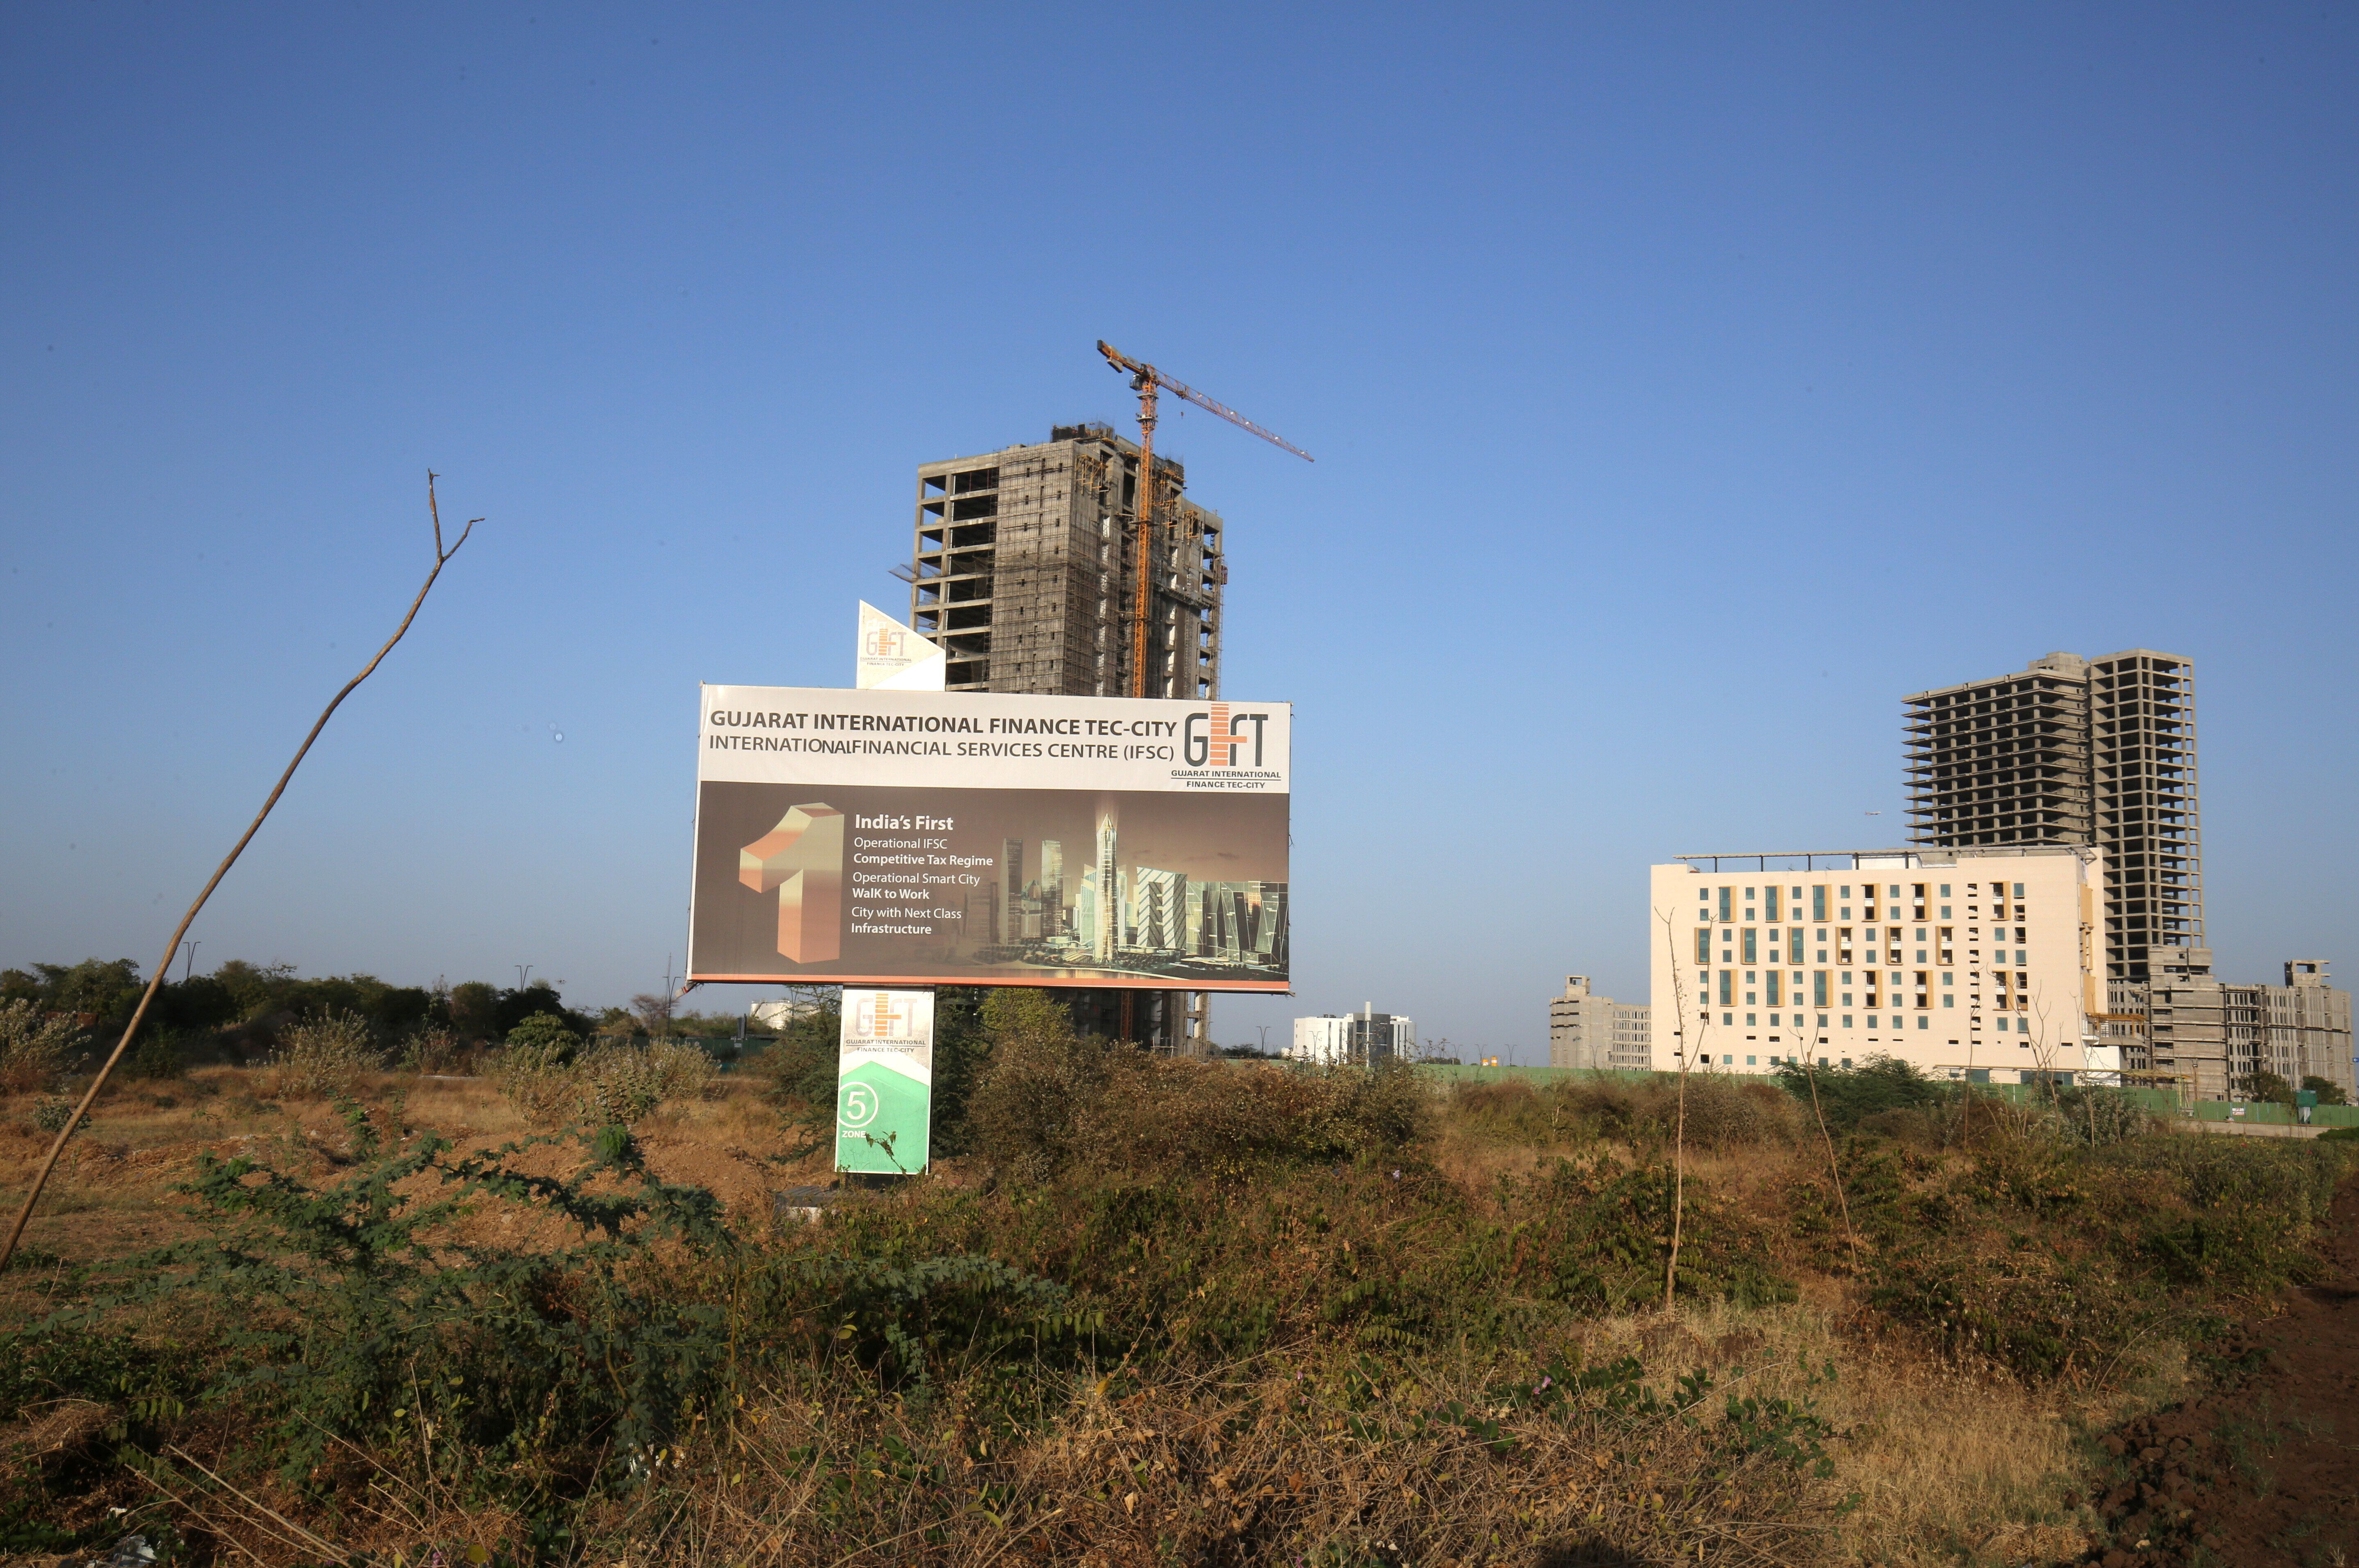 Modi's Ambitious Gujarat Project From 2011 Is Still Struggling To Create